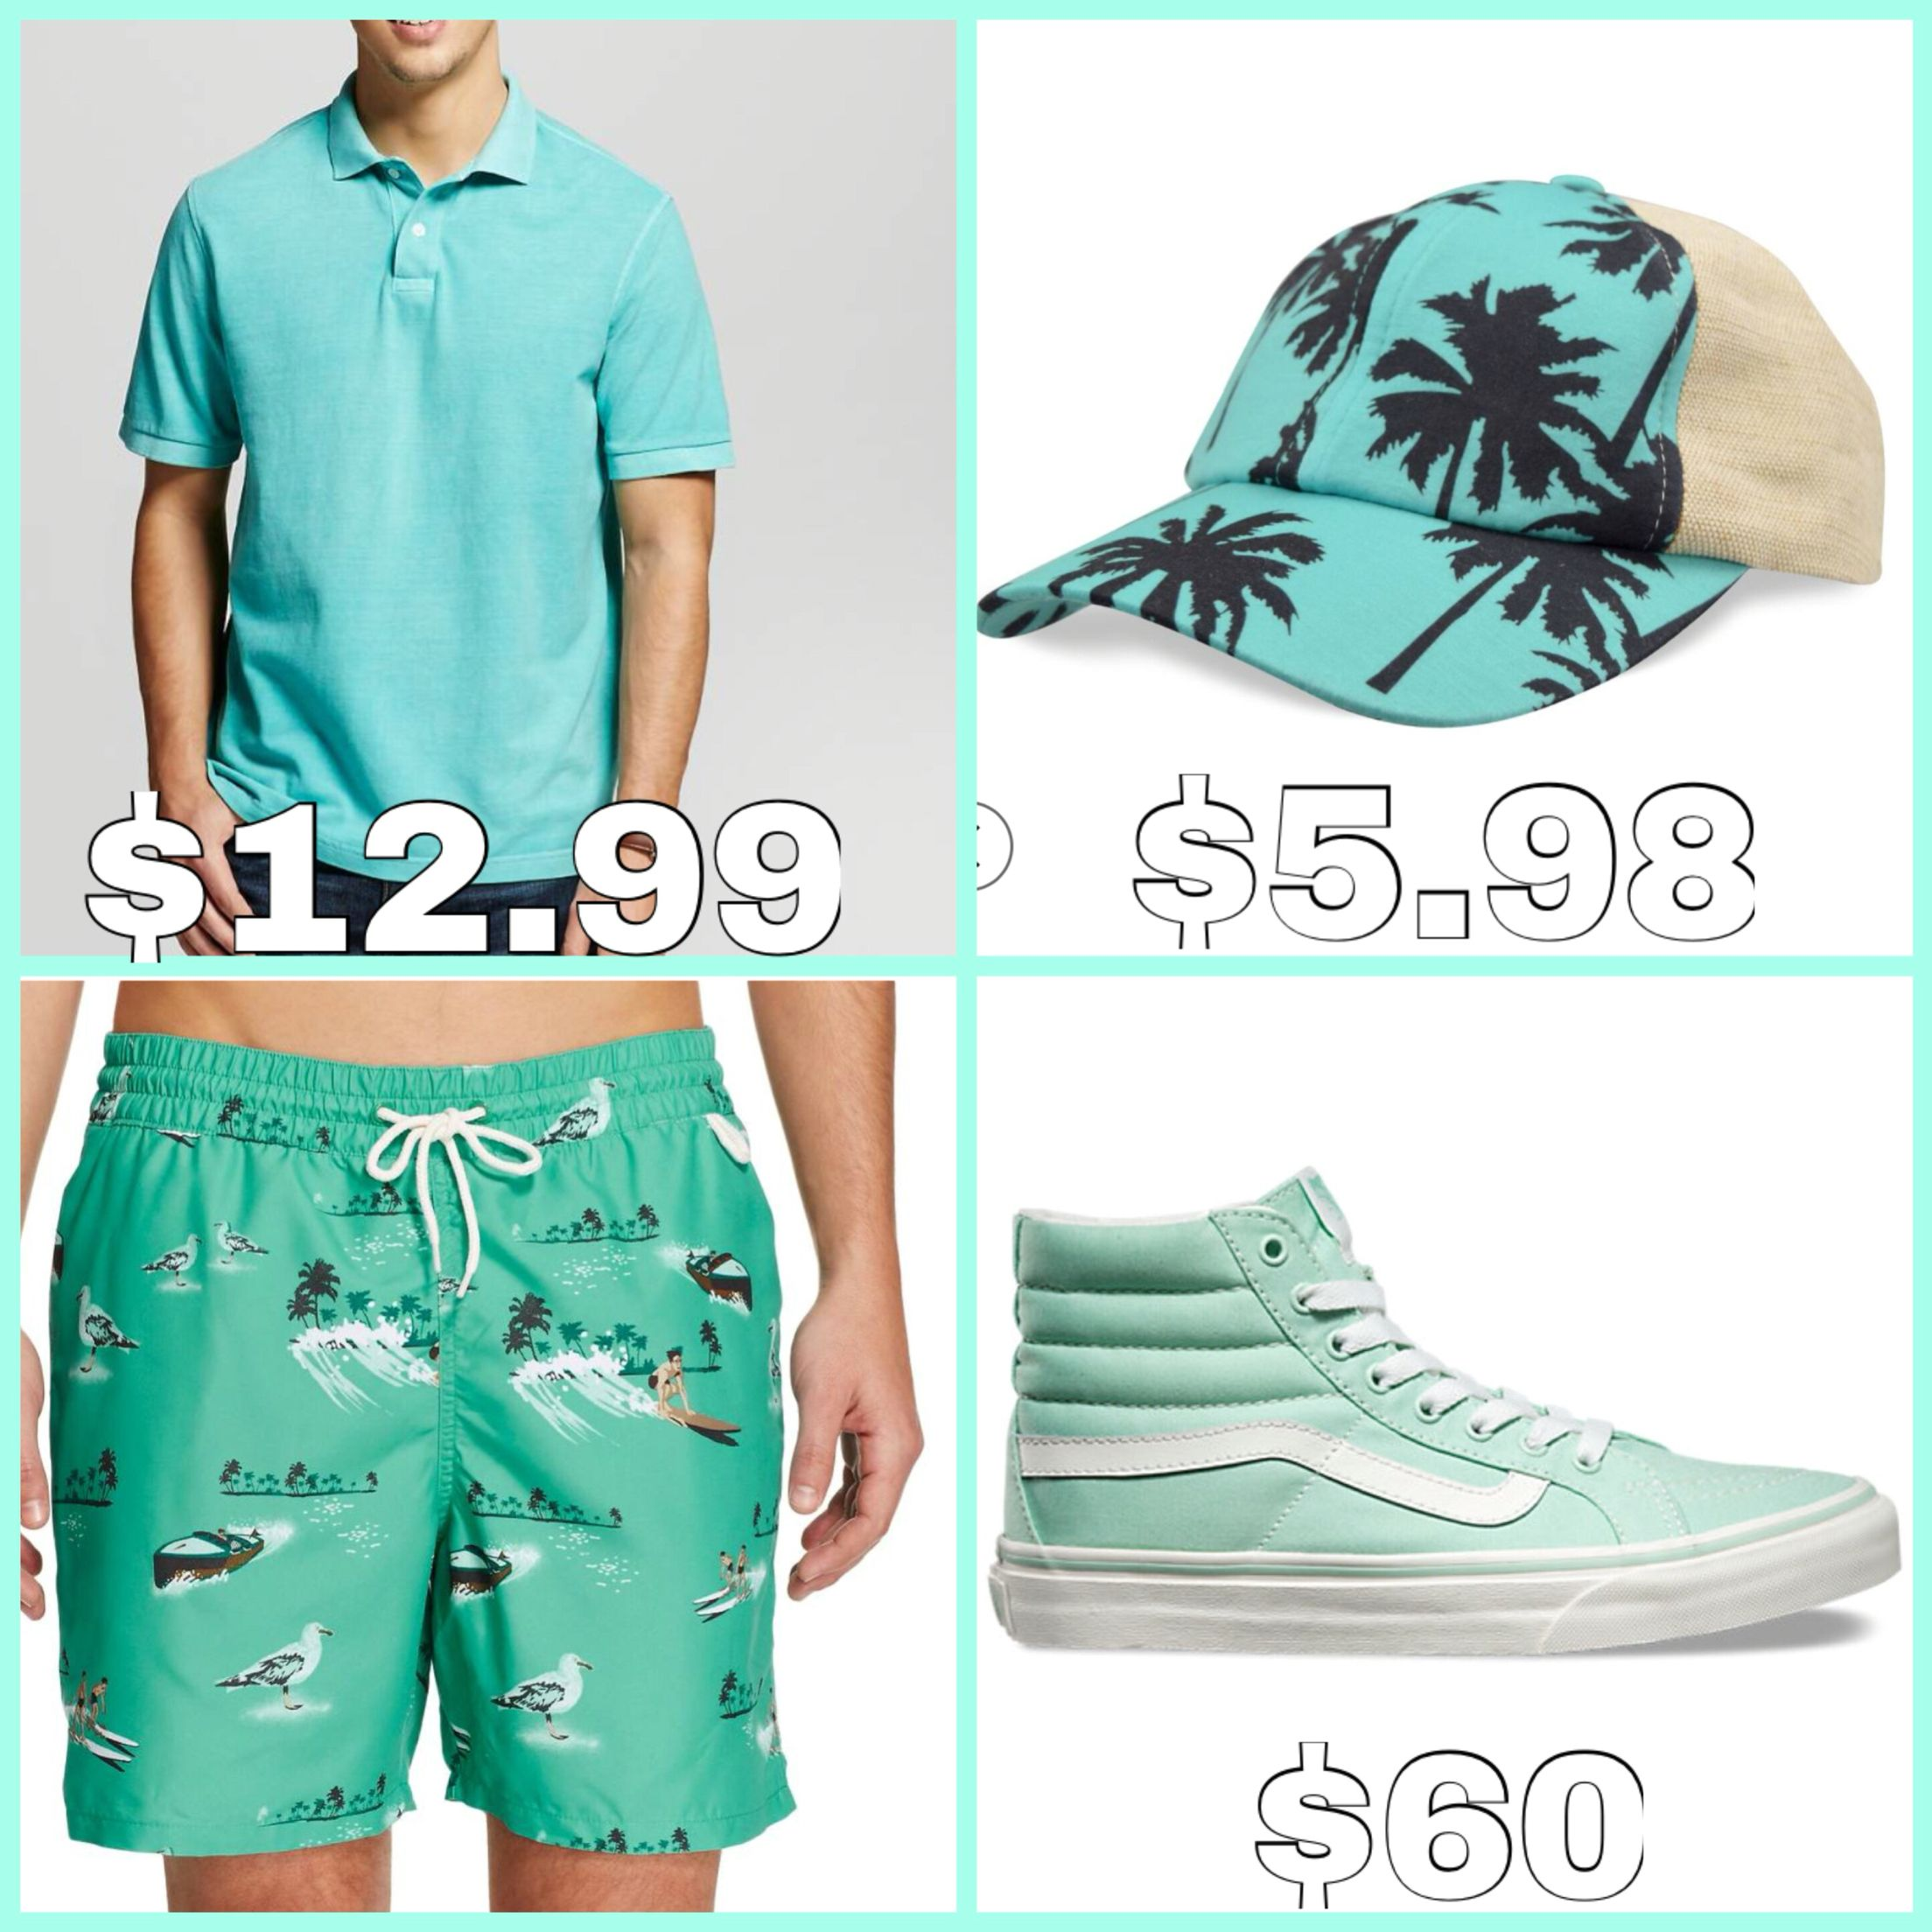 Aesthetic Outfit Ideas Summer